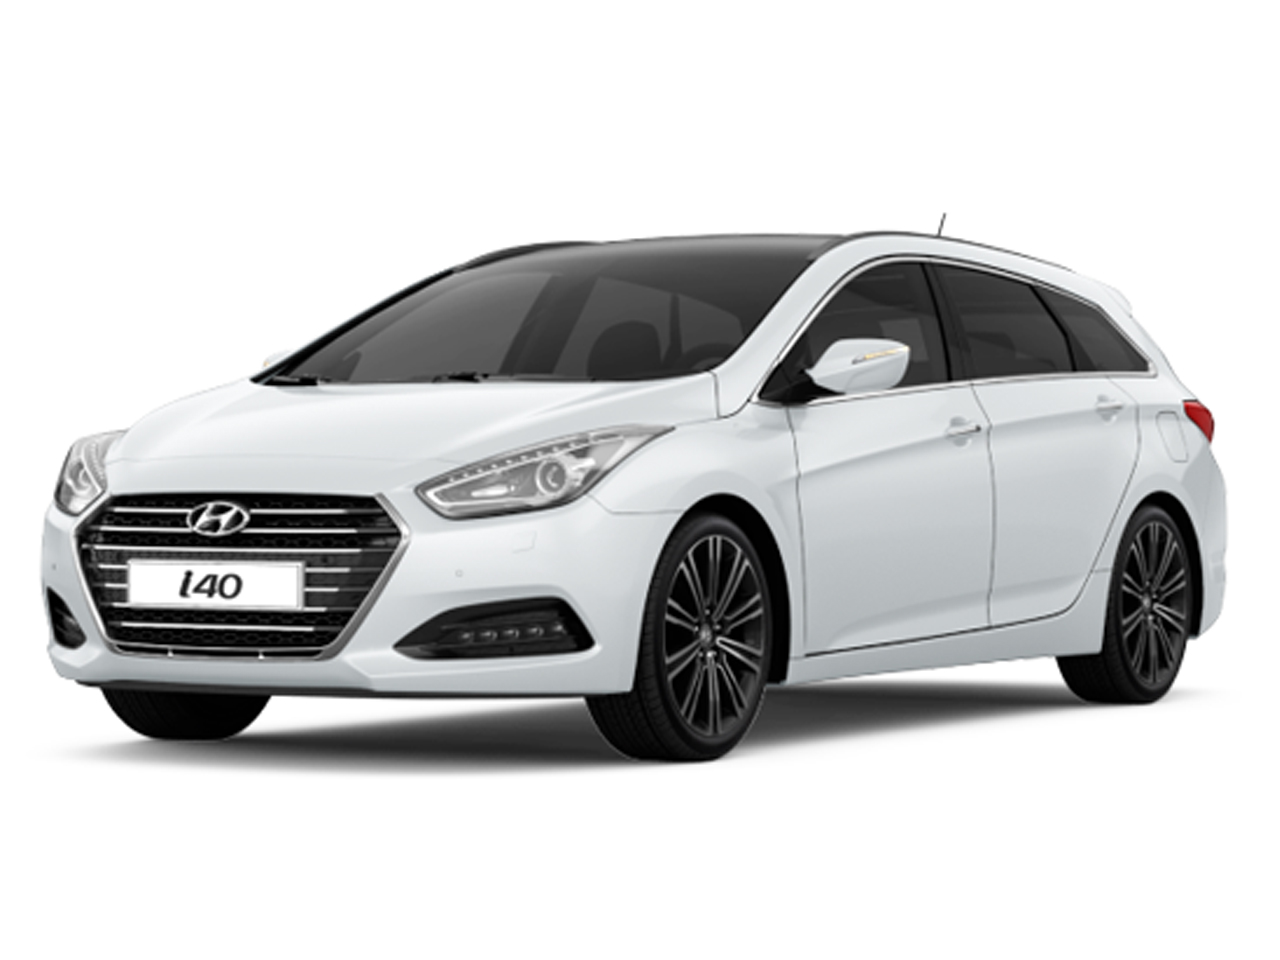 2018 hyundai i40 prices in uae gulf specs reviews for dubai abu dhabi and sharjah yallamotor. Black Bedroom Furniture Sets. Home Design Ideas